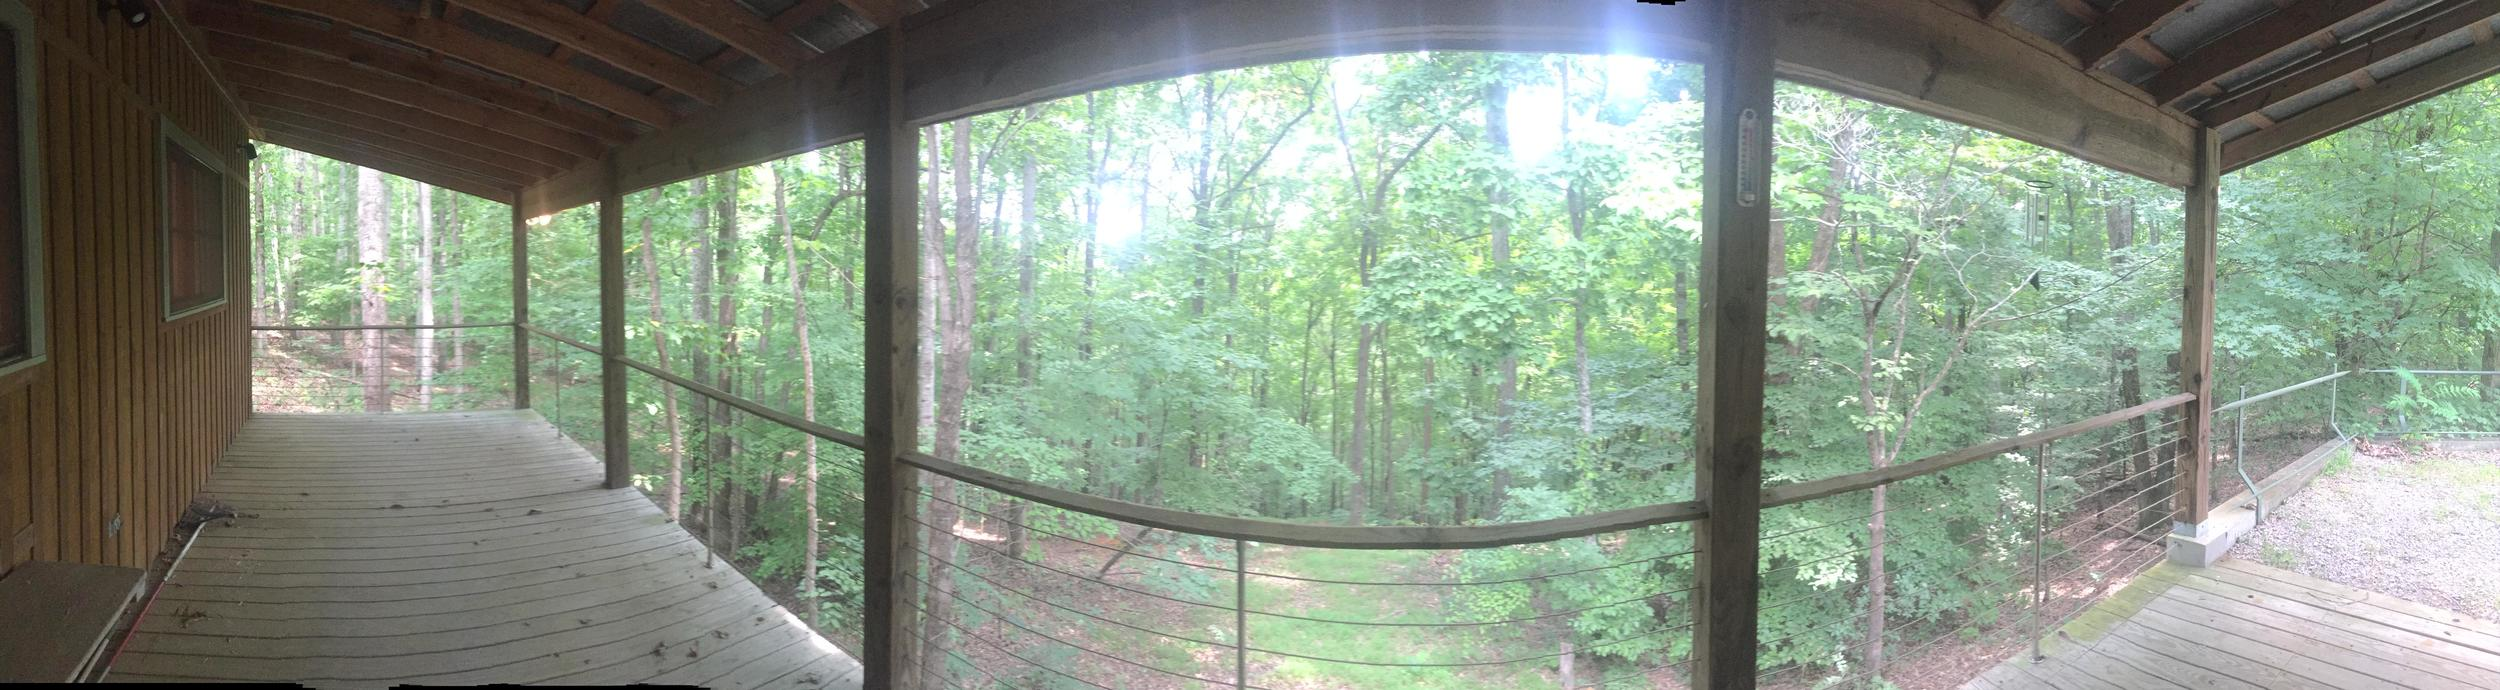 Panoramic View of the Studio porch